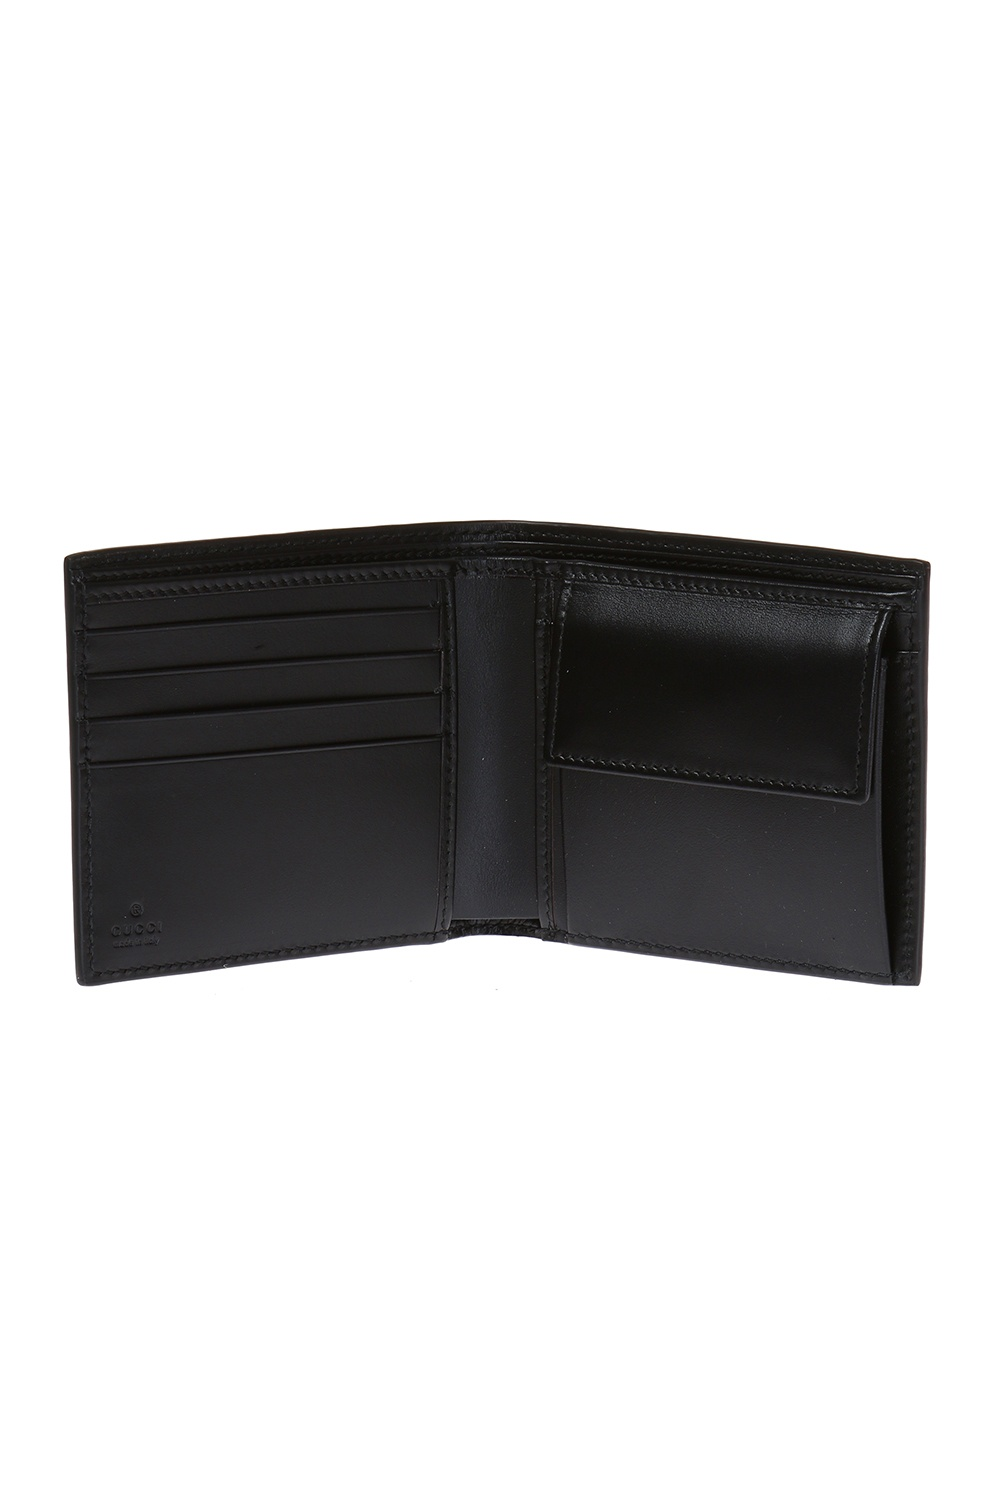 Gucci 'Web' stripe bi-fold wallet